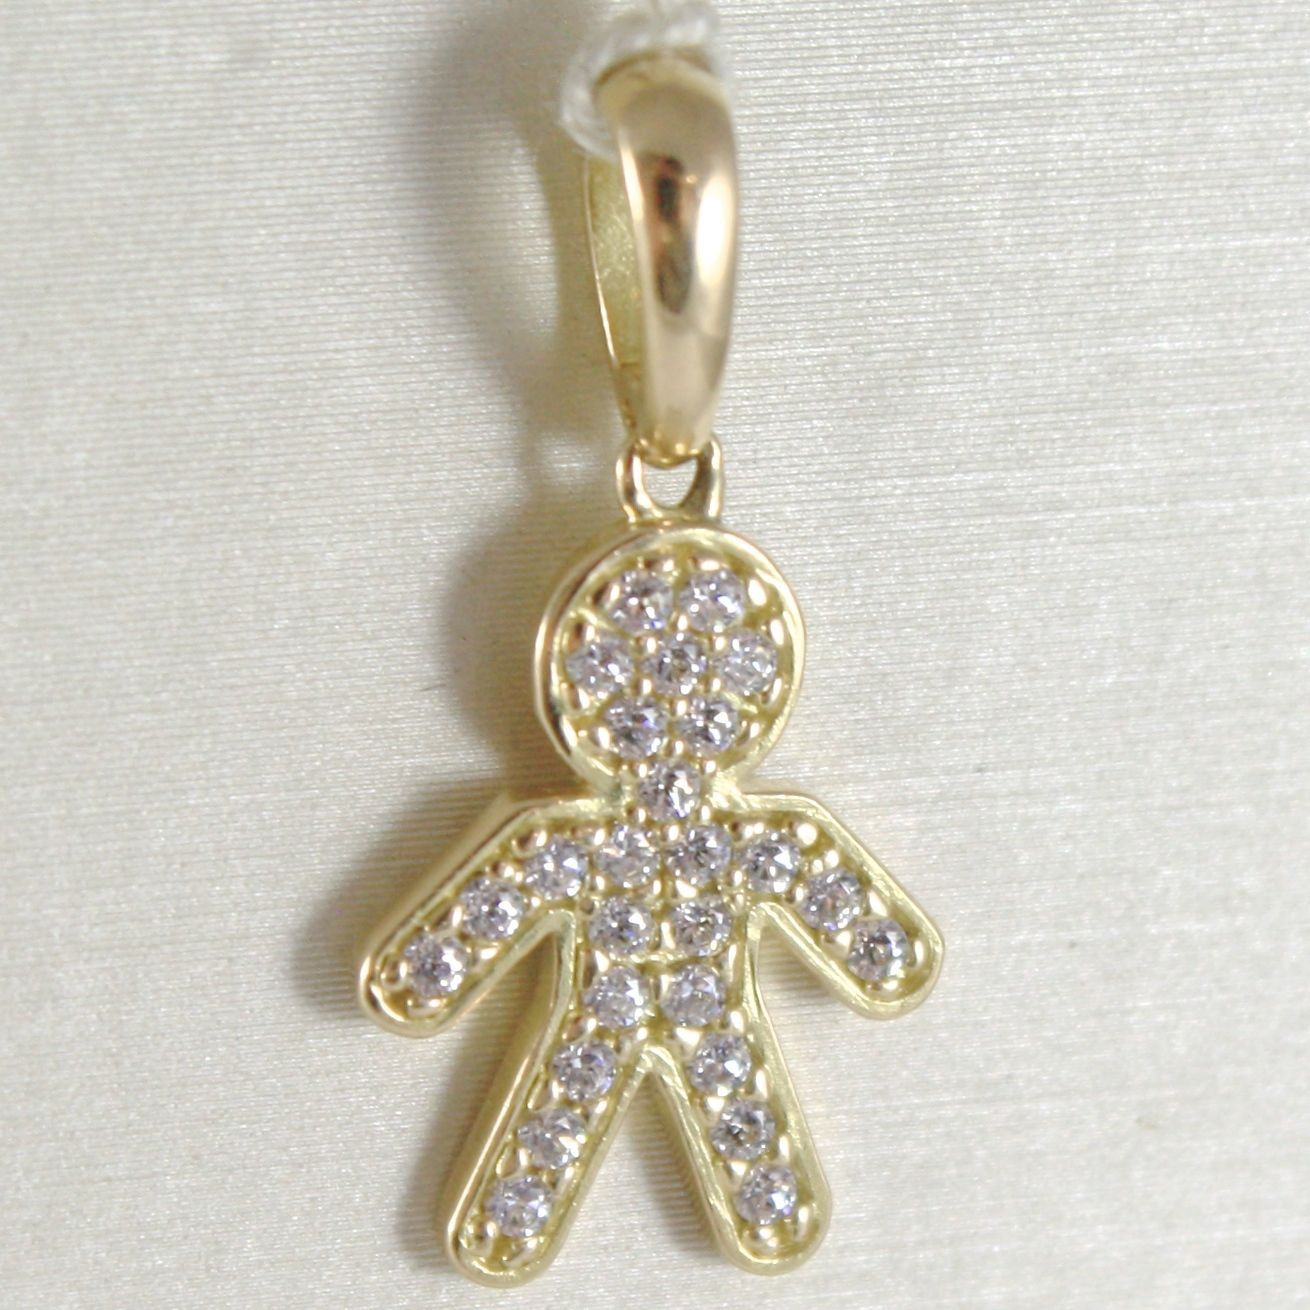 YELLOW GOLD PENDANT 750 18K, CHILD, CHILD LONG 2.3 CM ZIRCON MADE IN ITALY